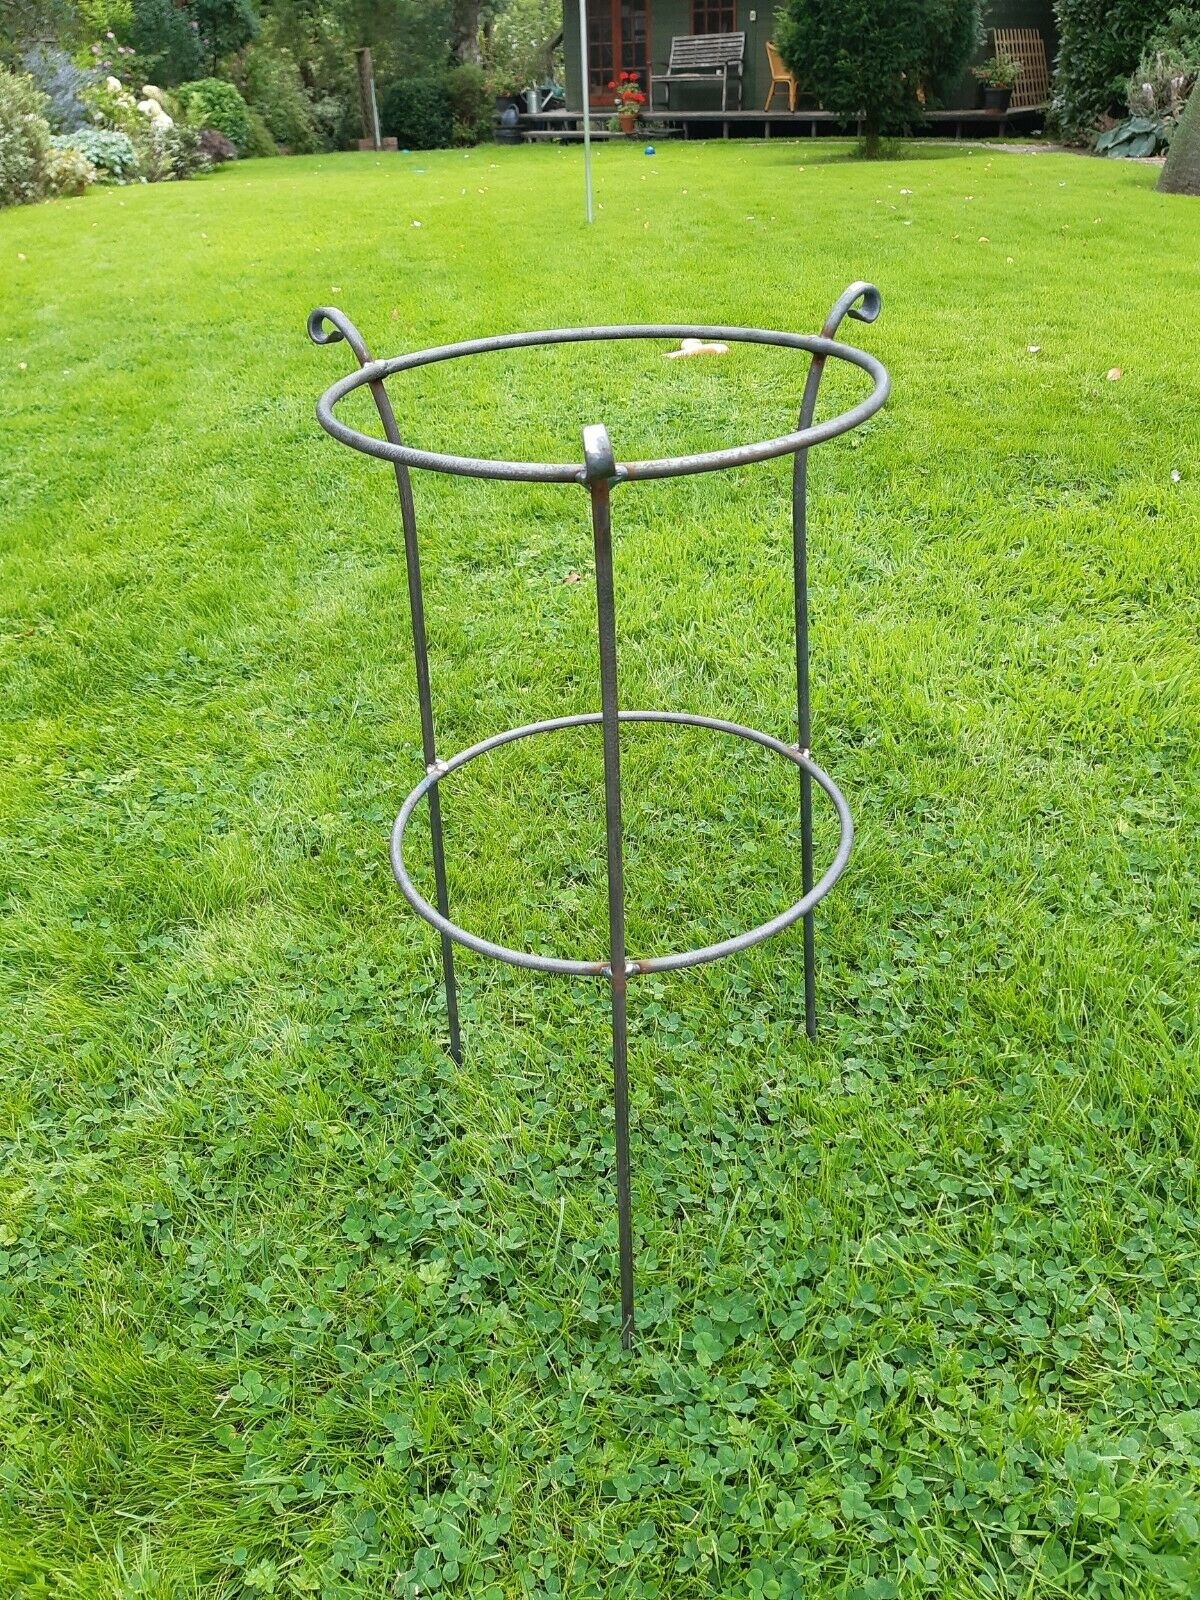 Handmade Heavy Duty Antique Style Herbaceous/Peony Plant Support: 5/16